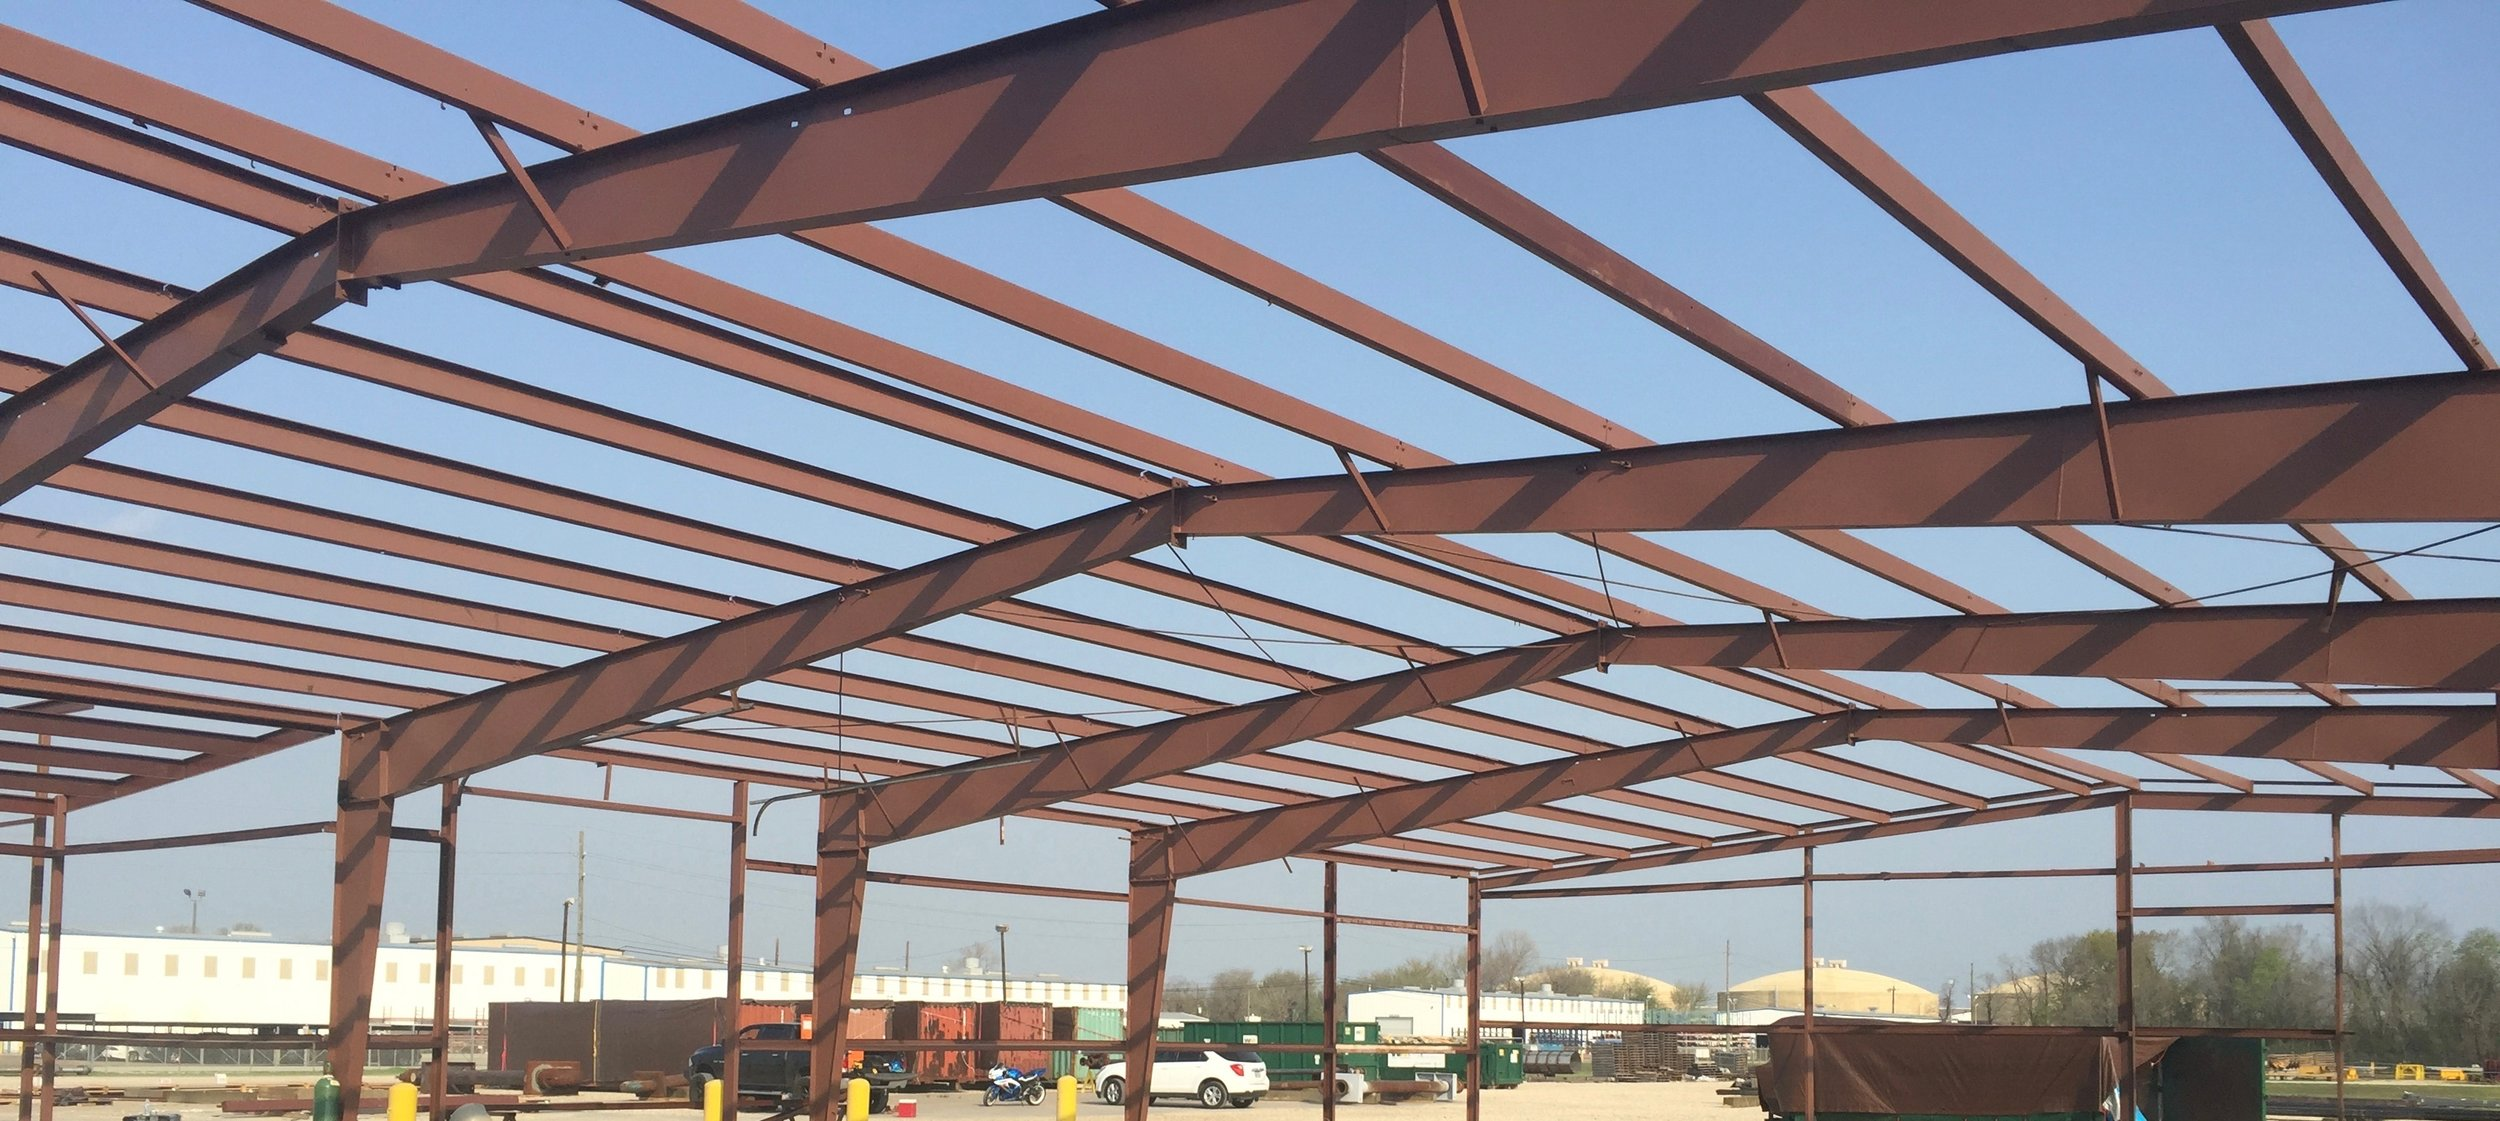 Because this building was not in use we were able to open it up to allow the work to be accomplished more efficiently. After purlins replaced, frame cleaned and painted.